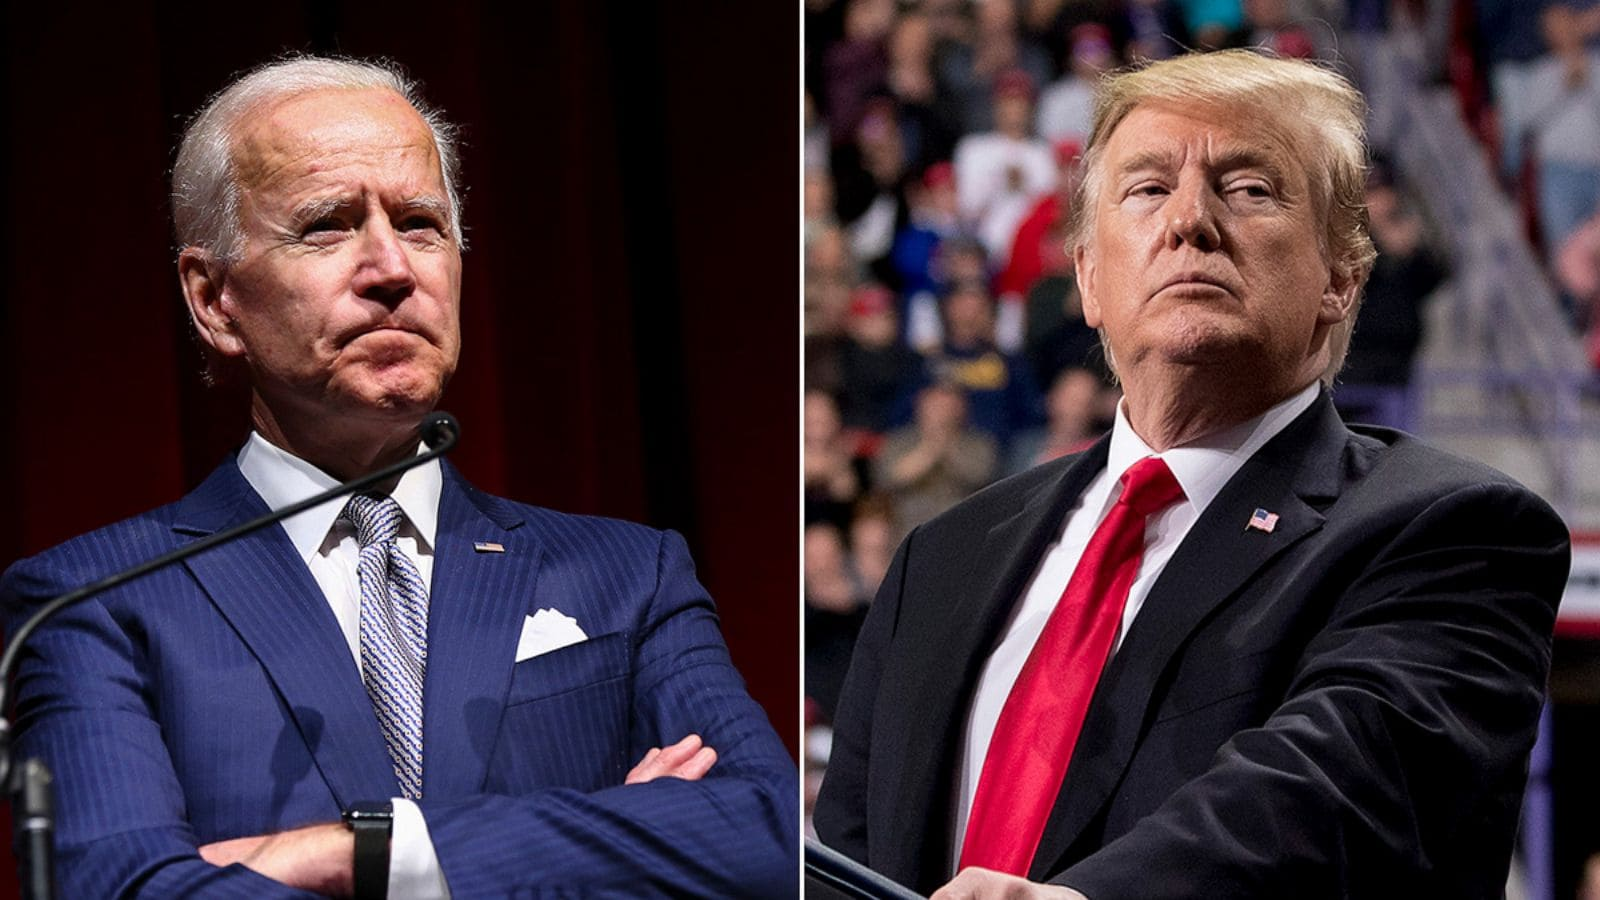 Trump and Biden to be muted during in next debate to avoid interruptions